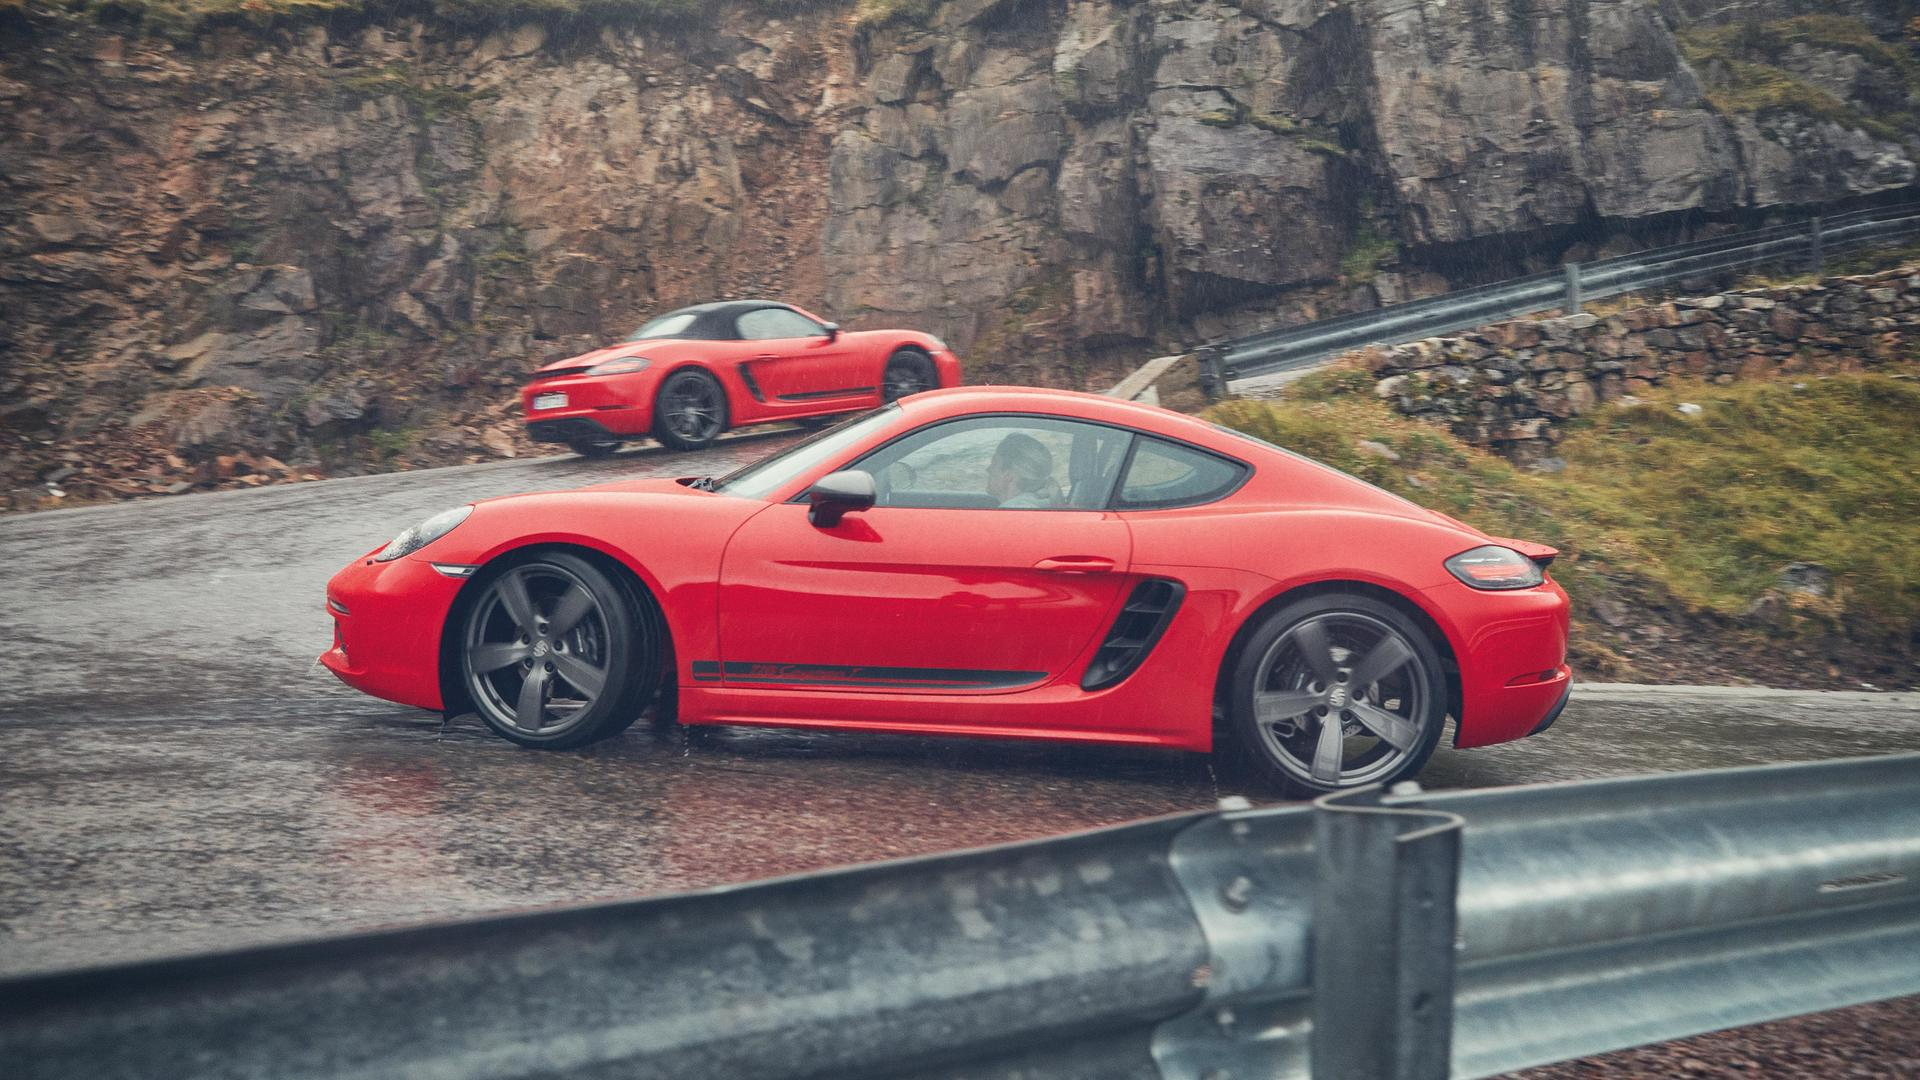 2019 Porsche 718 Boxster and Cayman T Side Wallpaper (10)